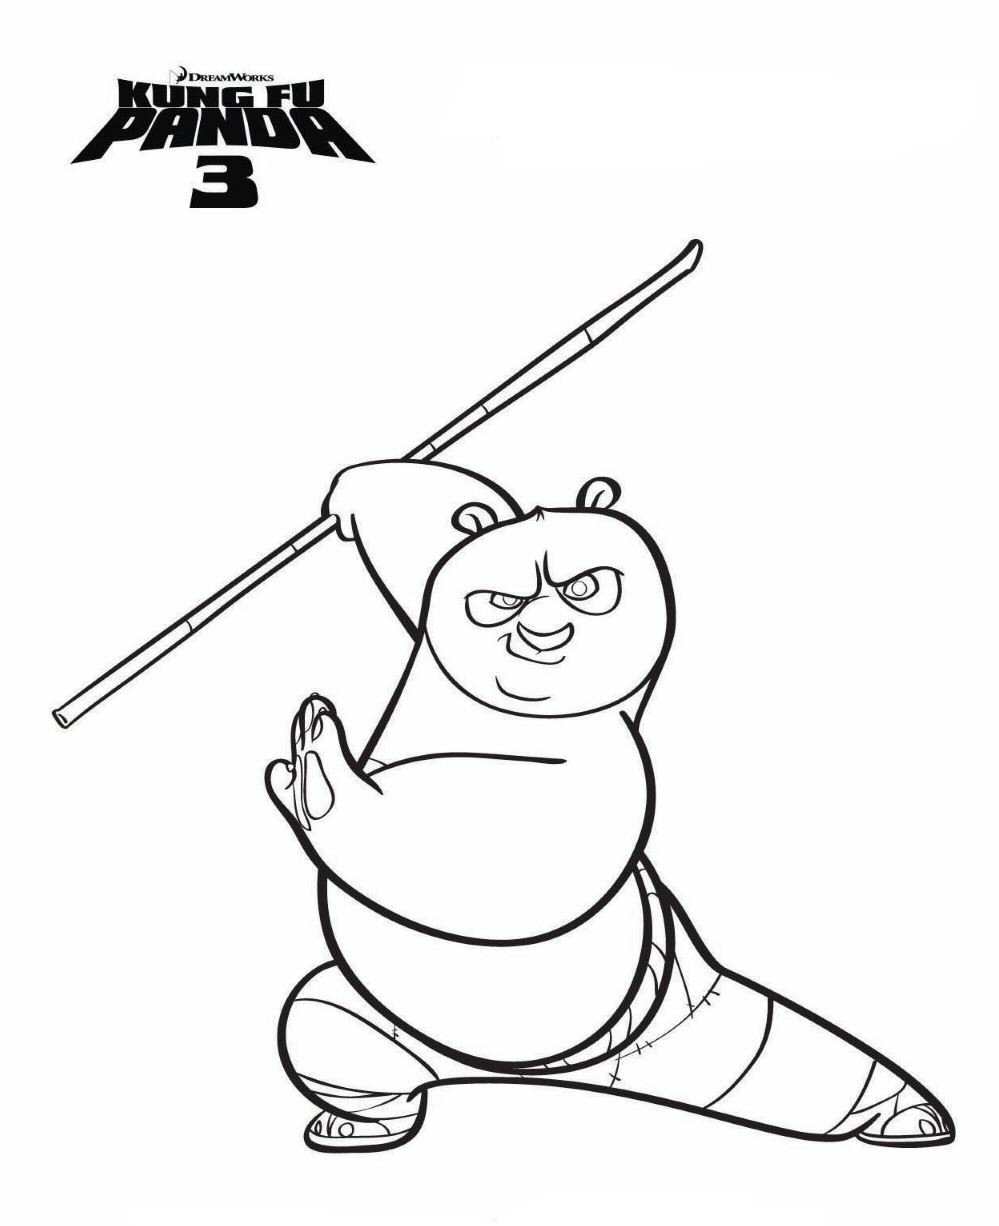 7 kung fu panda 3 coloring pages - Panda Pictures To Color